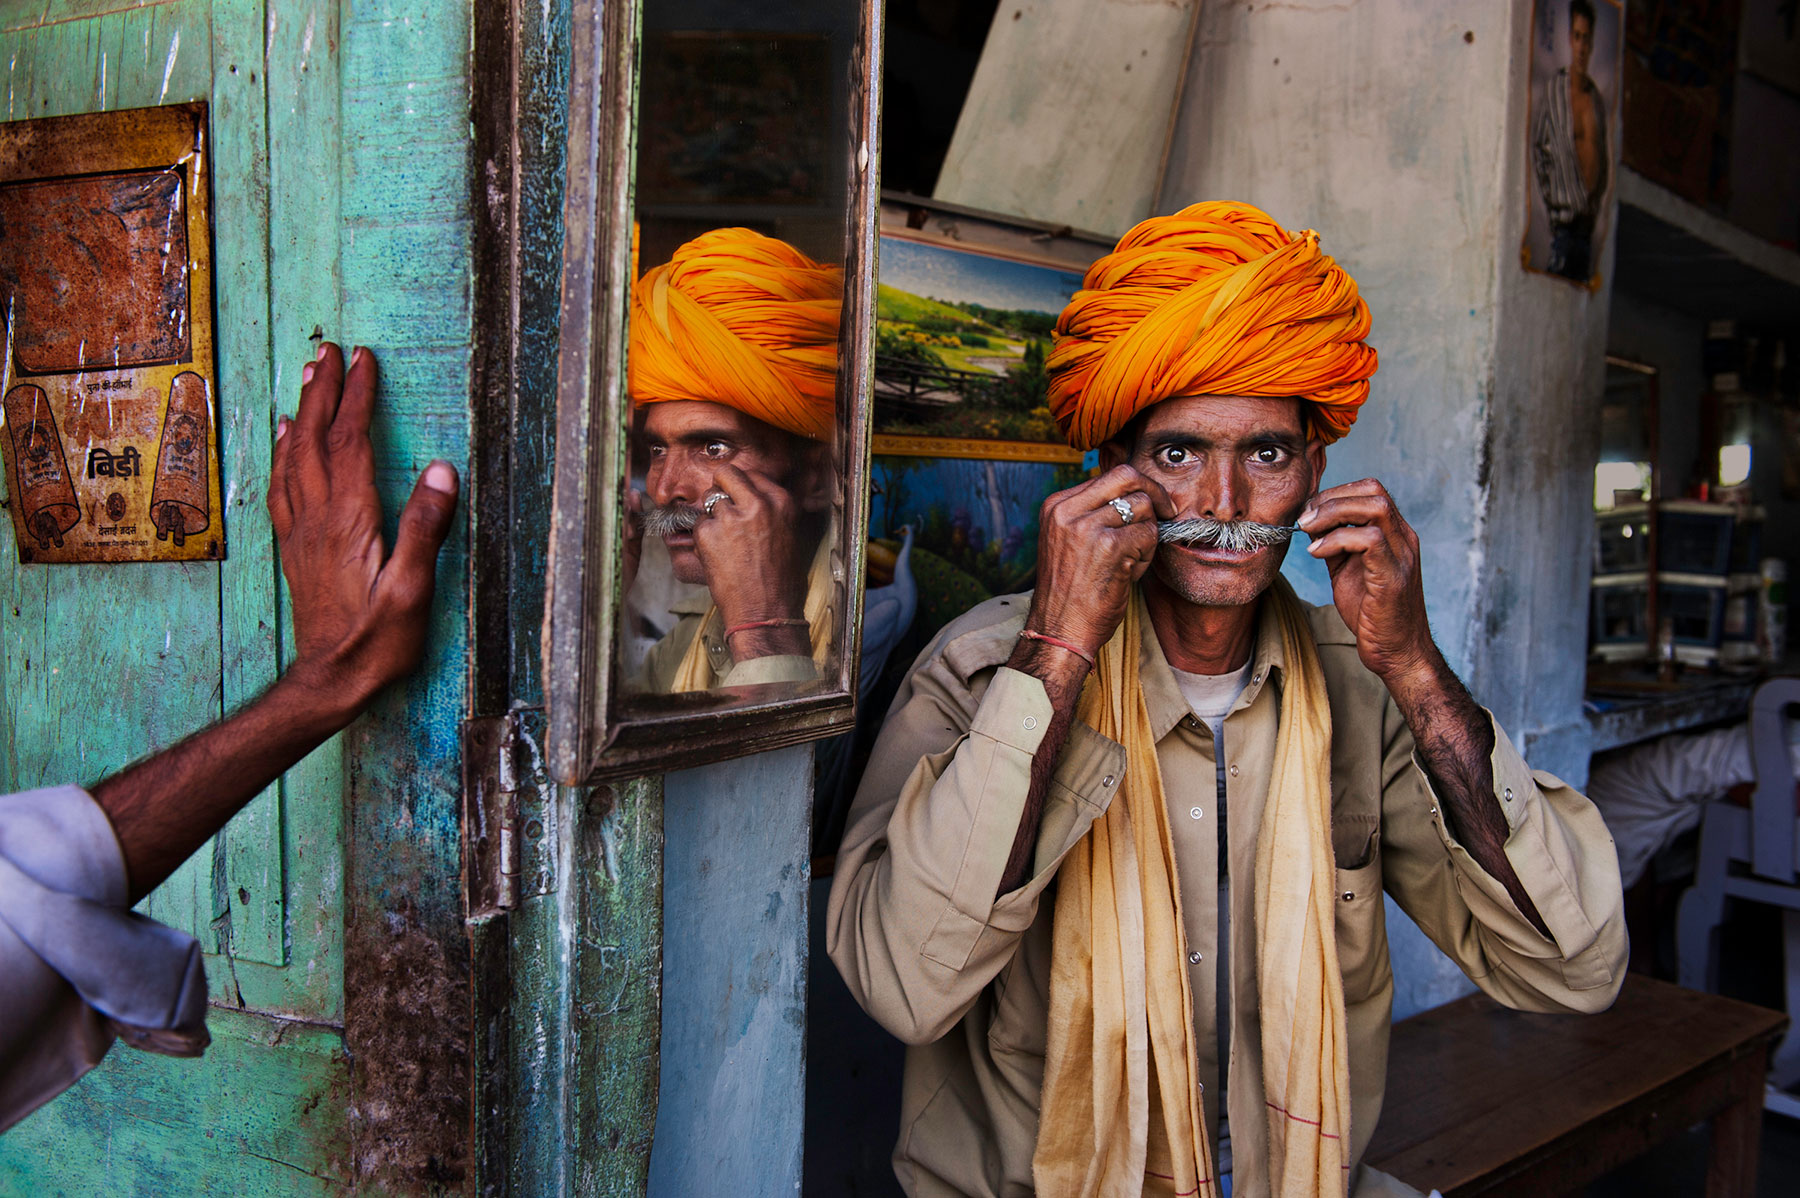 India.Photo by Steve McCurry.